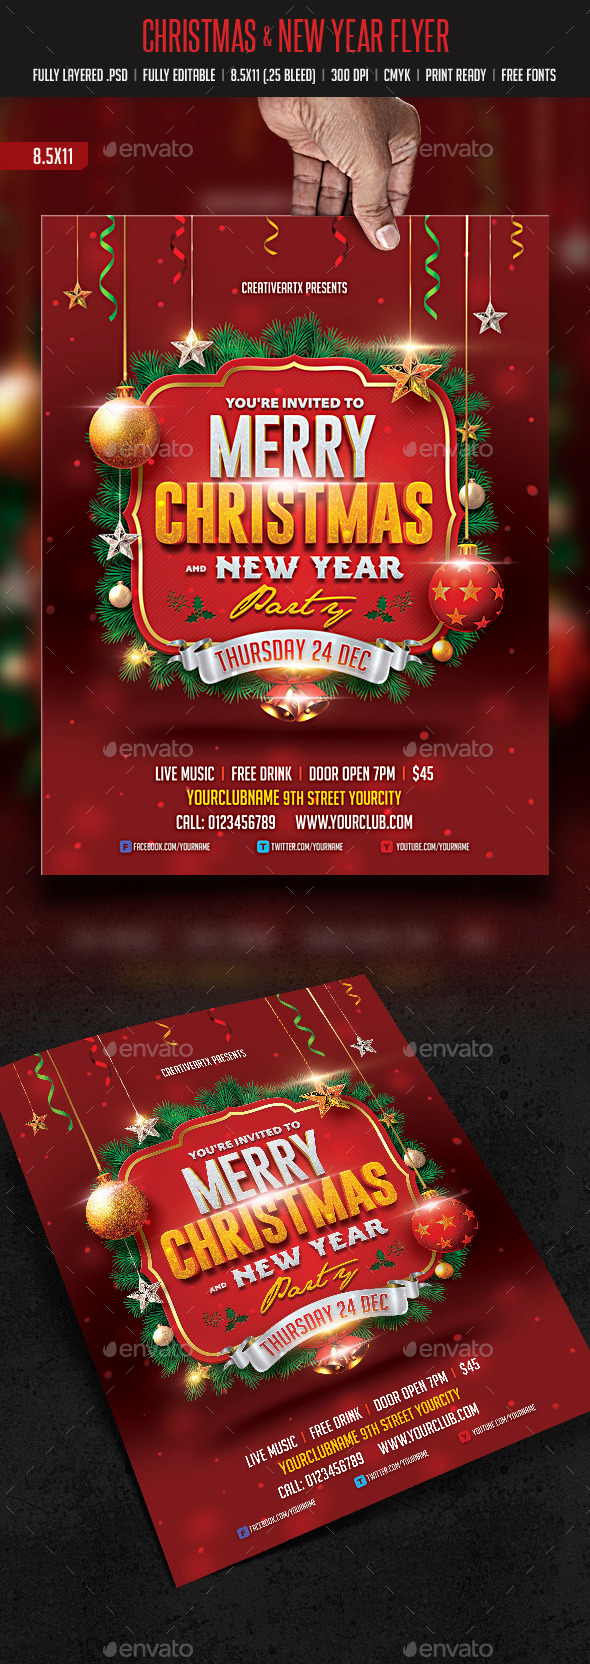 GraphicRiver Christmas & New Year Flyer 9472755